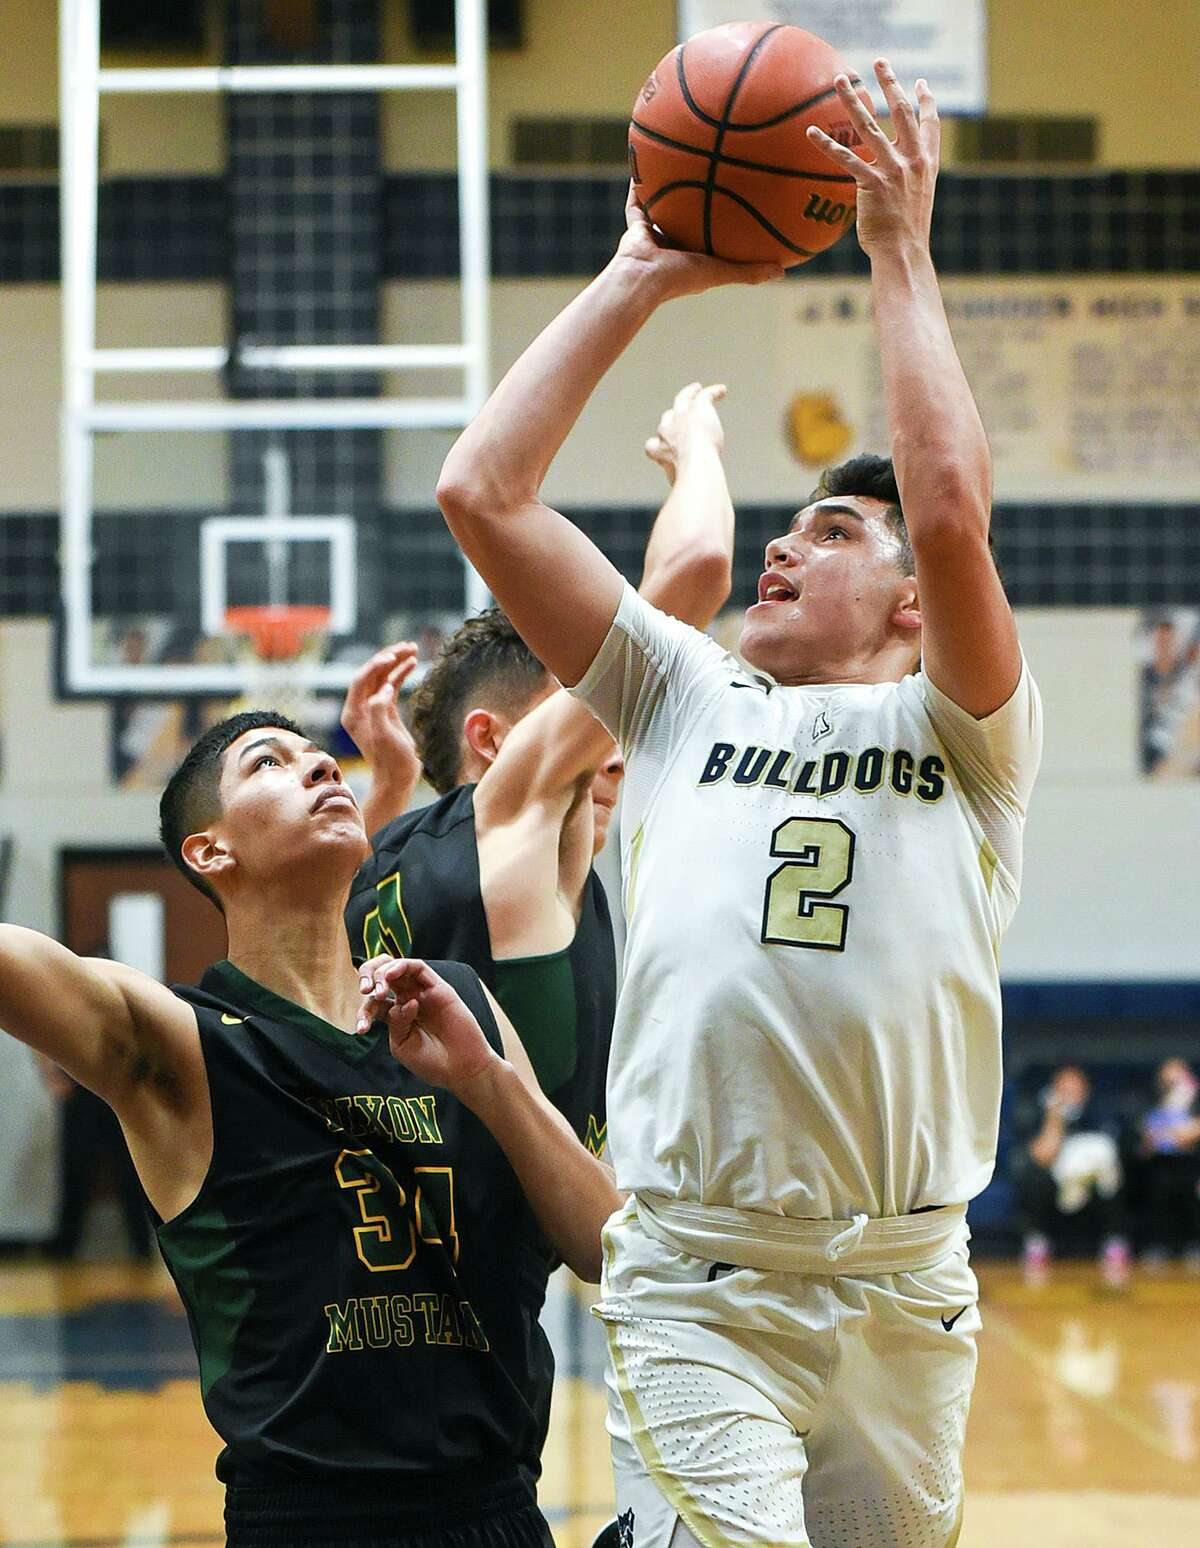 Bobby Torres scored a team-high 15 points Wednesday as Alexander improved to 3-0 with a 64-47 win at Edinburg North.